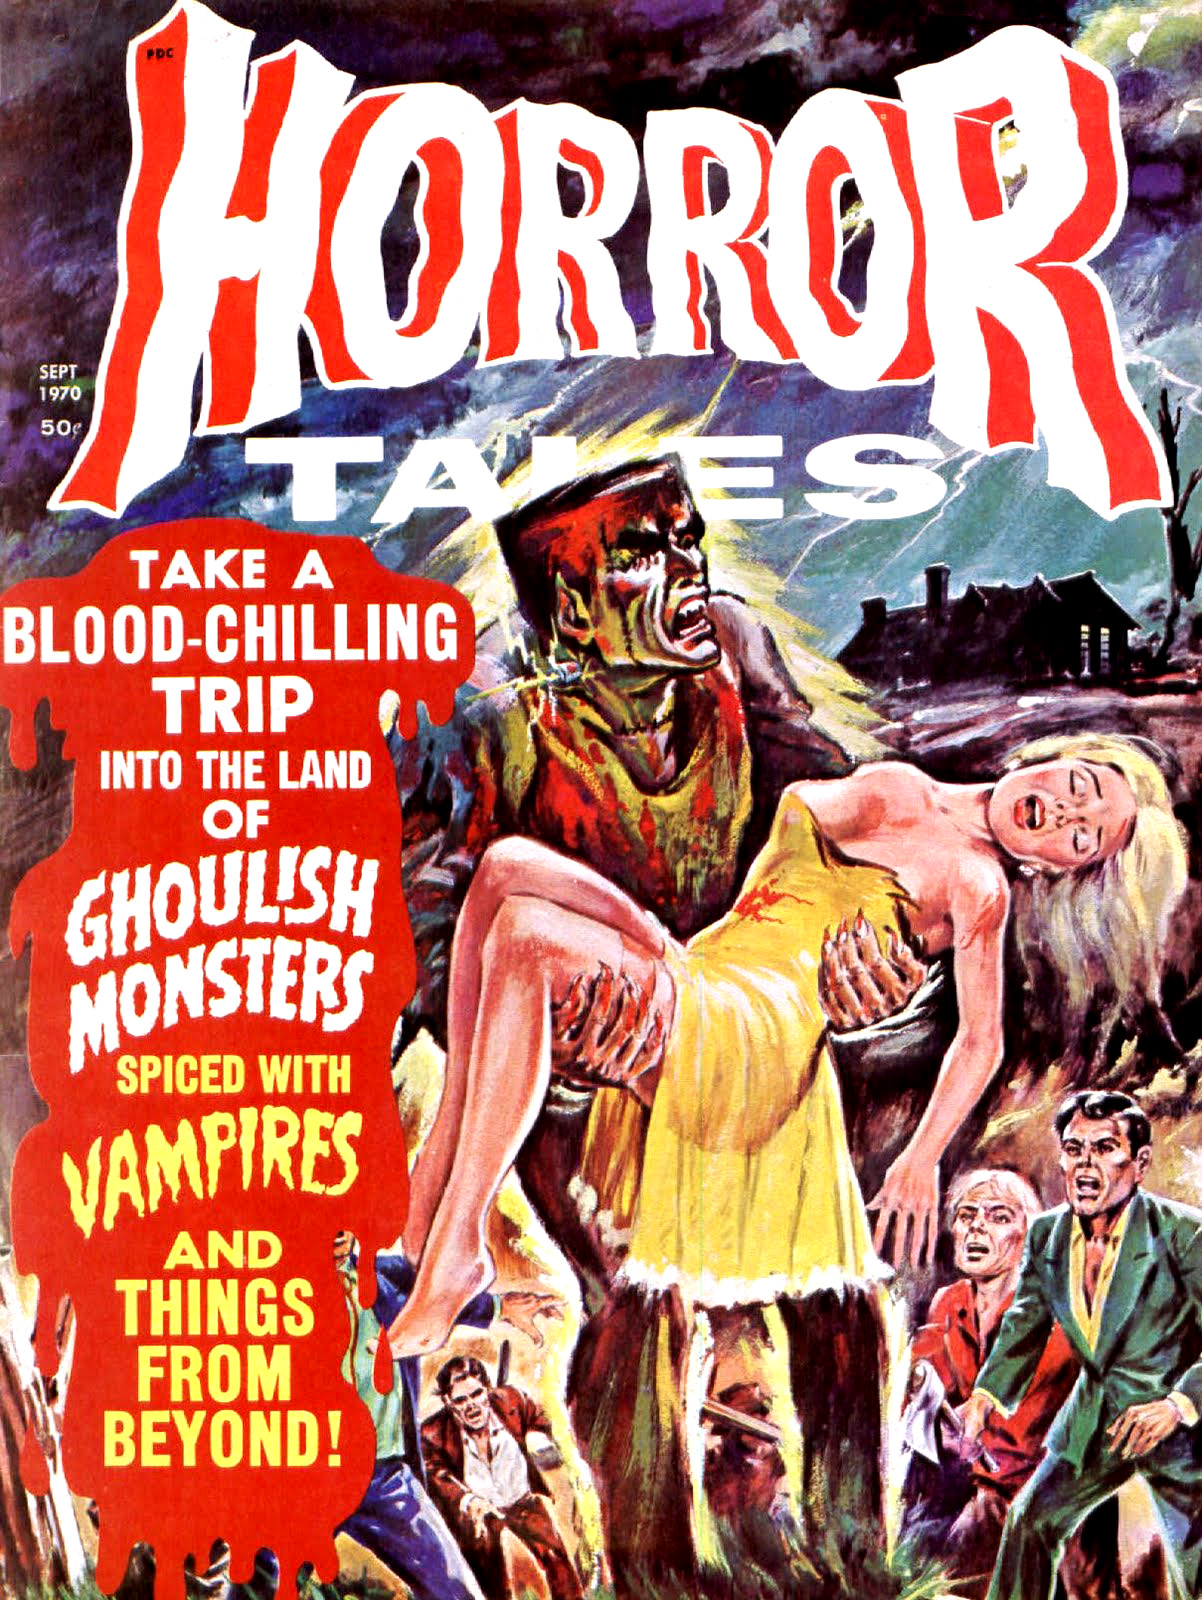 Horror Tales - Vol.2 #5 (Eerie Publications, 1970)